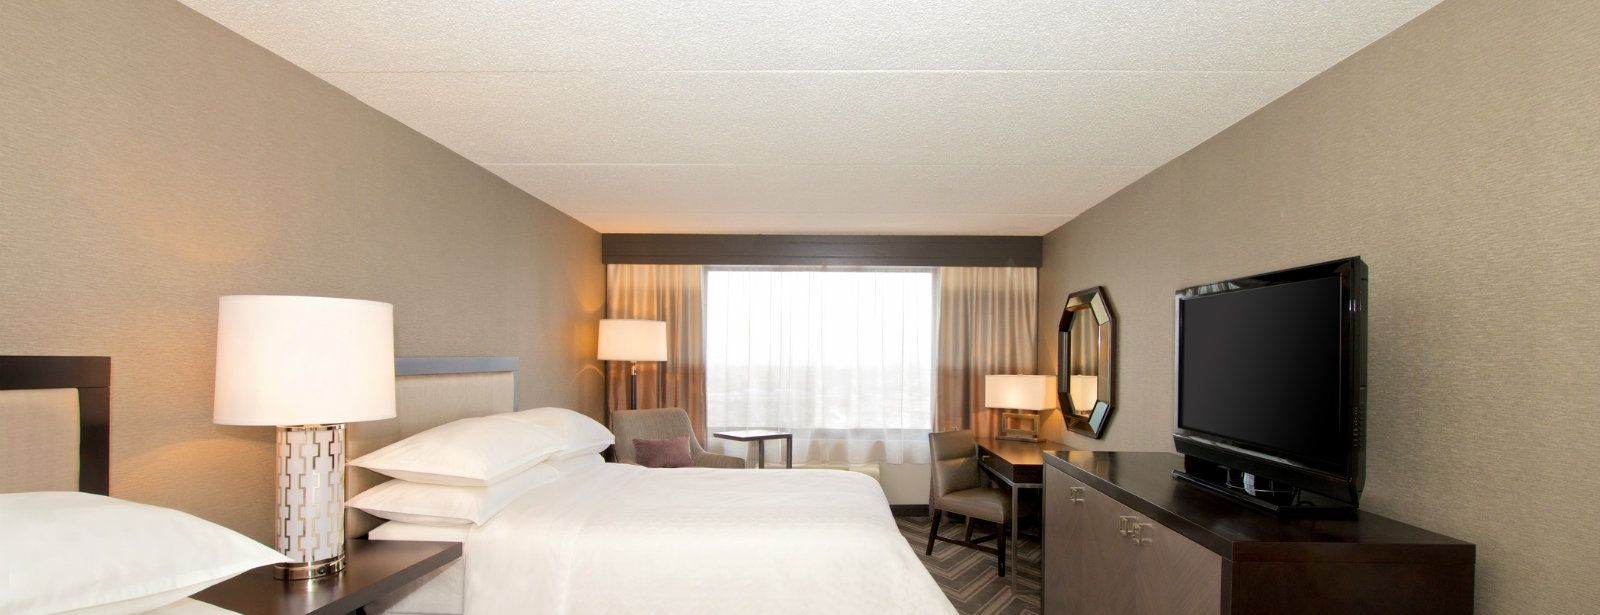 Traditional Guest Room | Sheraton Bucks County Hotel